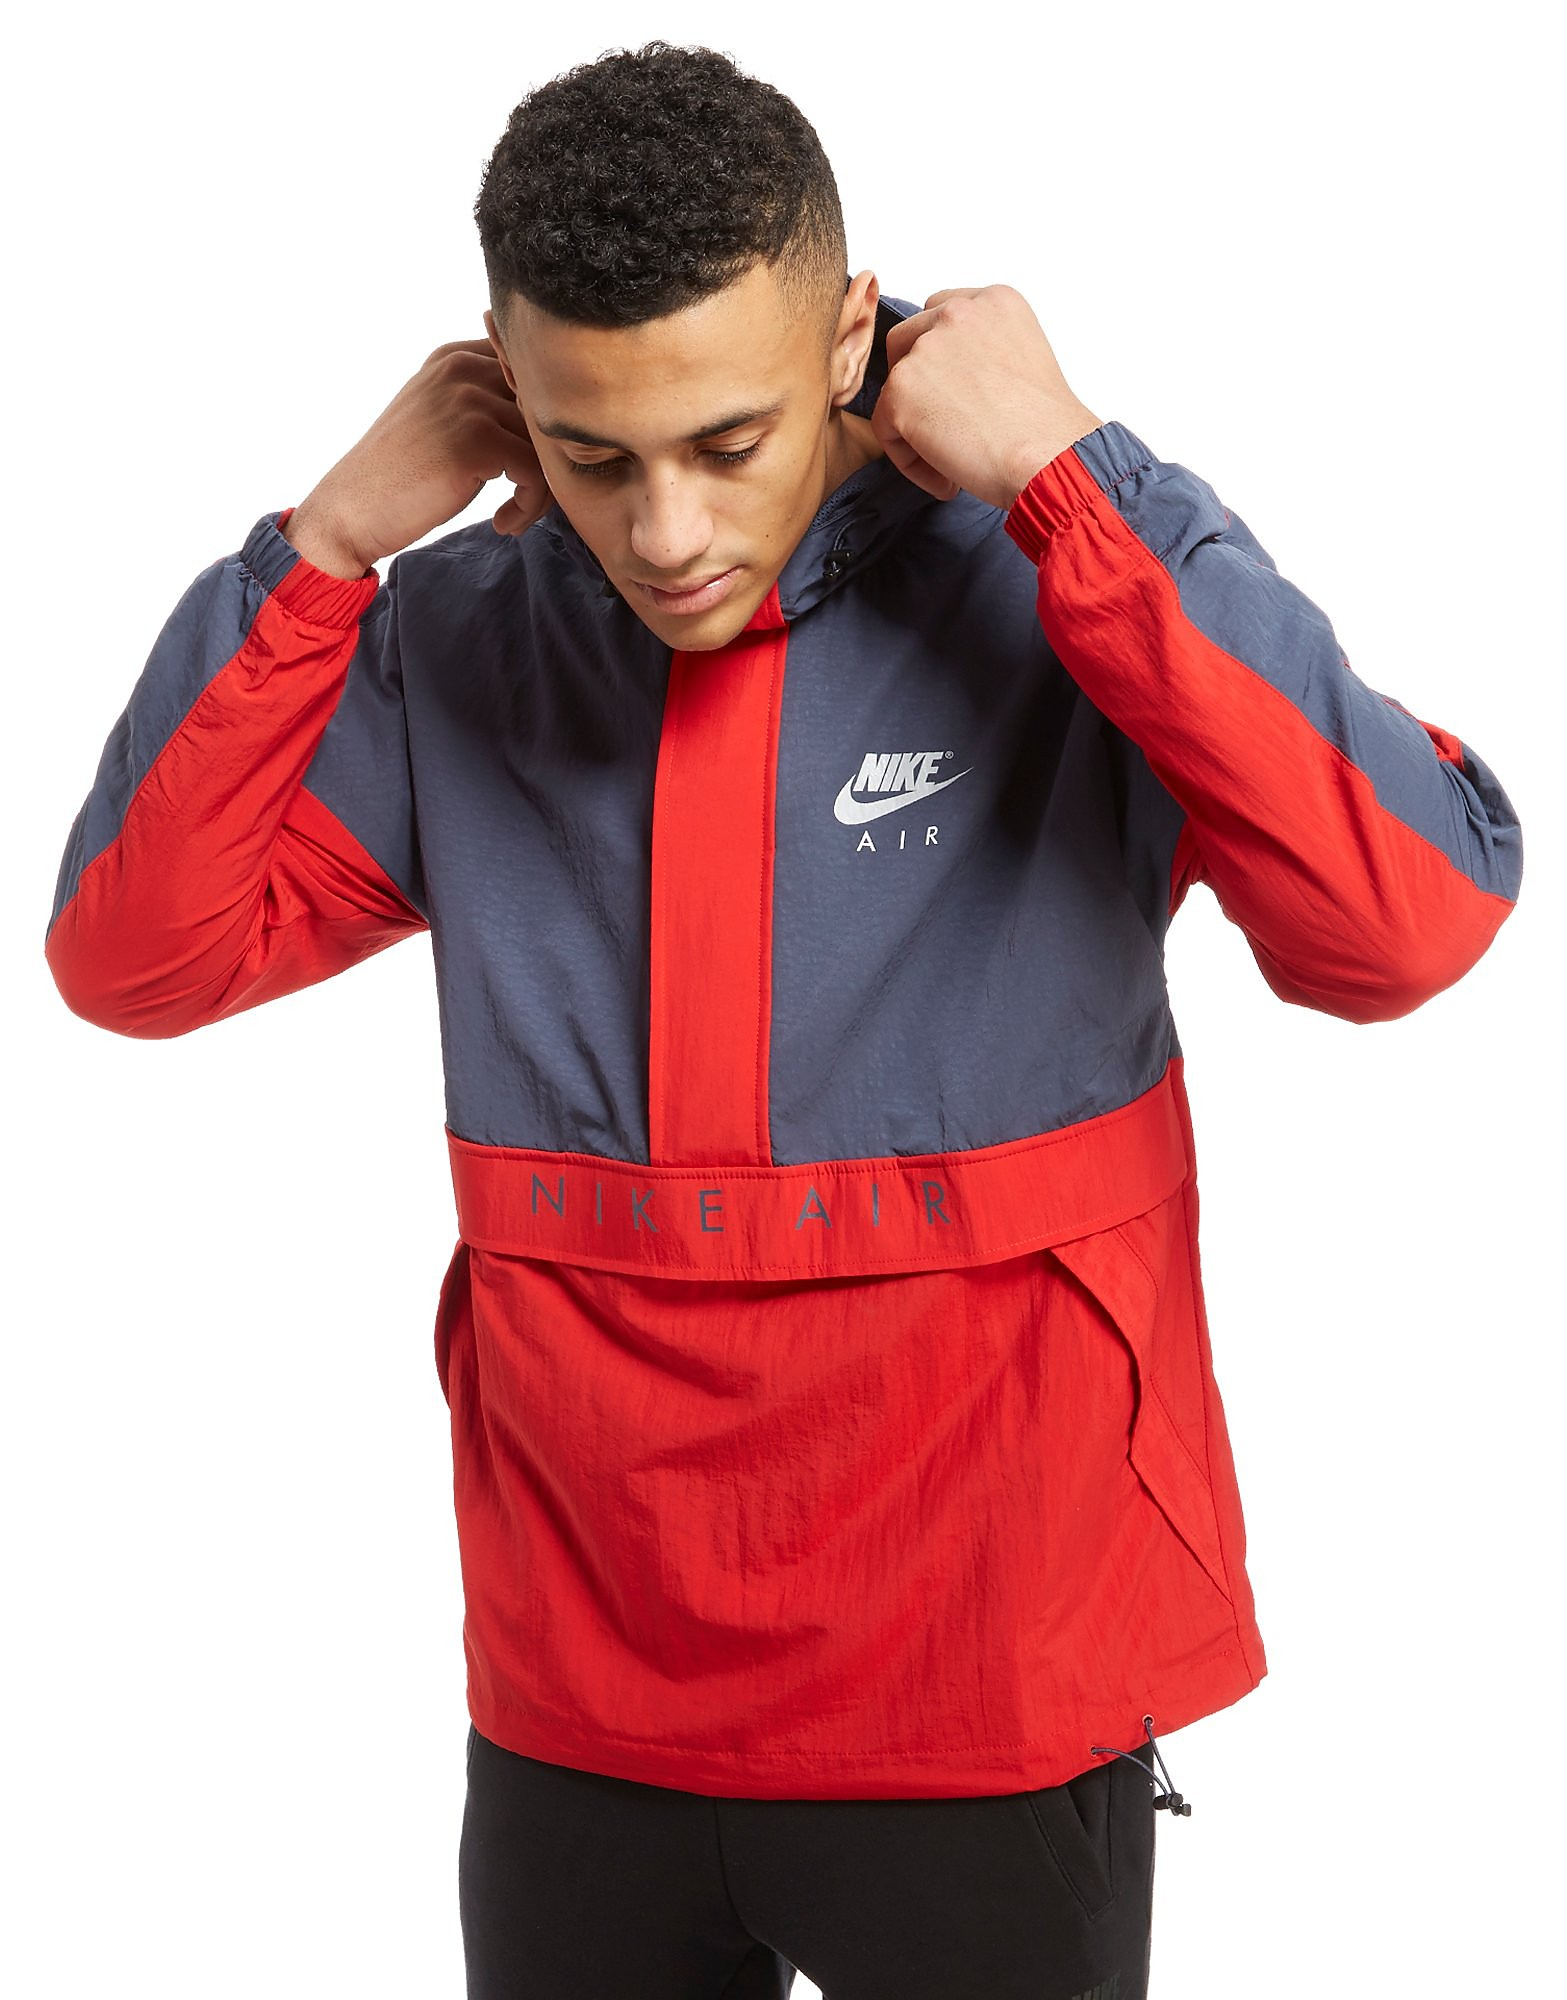 Nike Air Half-Zip Jacket